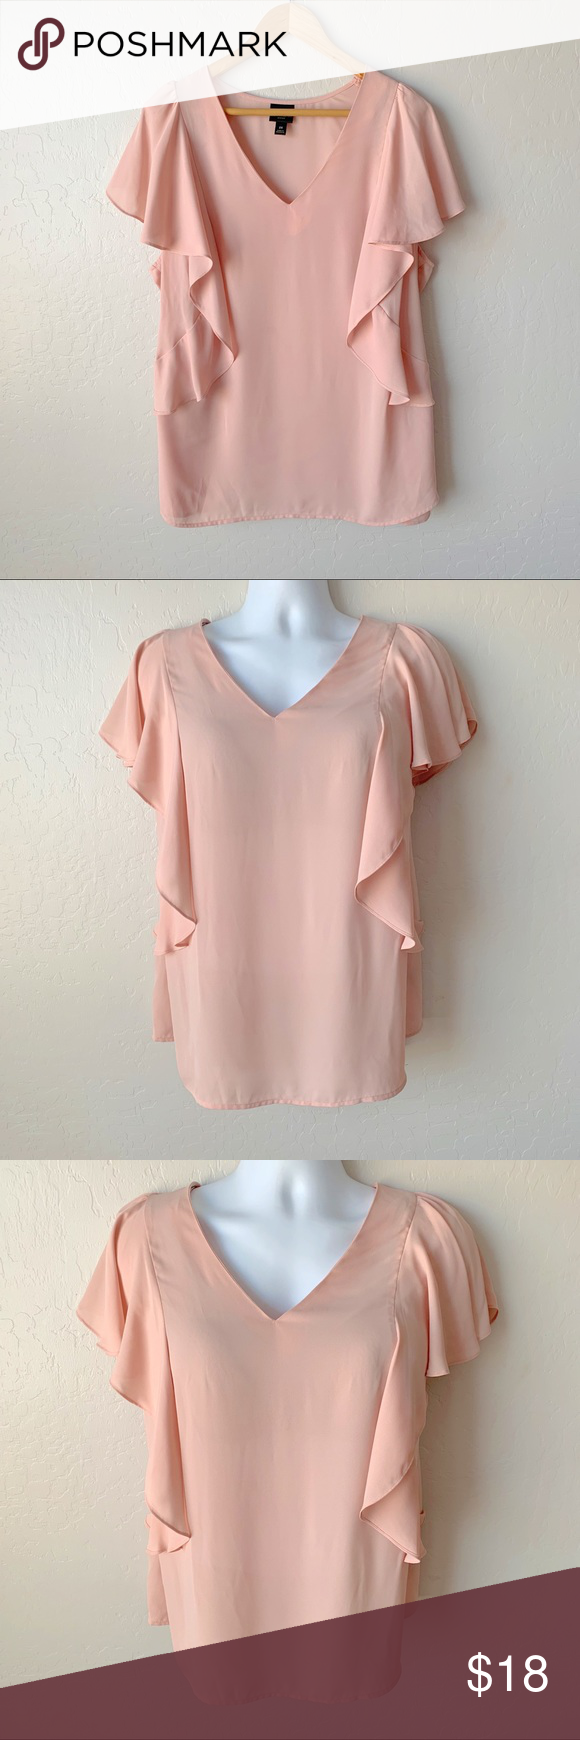 "Blush Pink Ruffle Sleeve Top - Size 2X Blush Pink Flutter Sleeve Top - Size 2X. Feminine v-neck blouse with trendy flutter sleeves. Pair with a skirt or slacks for the office, or go dressy casual with your skinny jeans and ankle boots. So versatile! Smoke free home.  ▪️Armpit to armpit: 25"" ▪️Shoulder to hem: 29"" ▪️100% polyester  ▪️Machine washable Worthington Tops Blouses #skinnyjeansandankleboots Blush Pink Ruffle Sleeve Top - Size 2X Blush Pink Flutter Sleeve Top - Size 2 #skinnyjeansandankleboots"